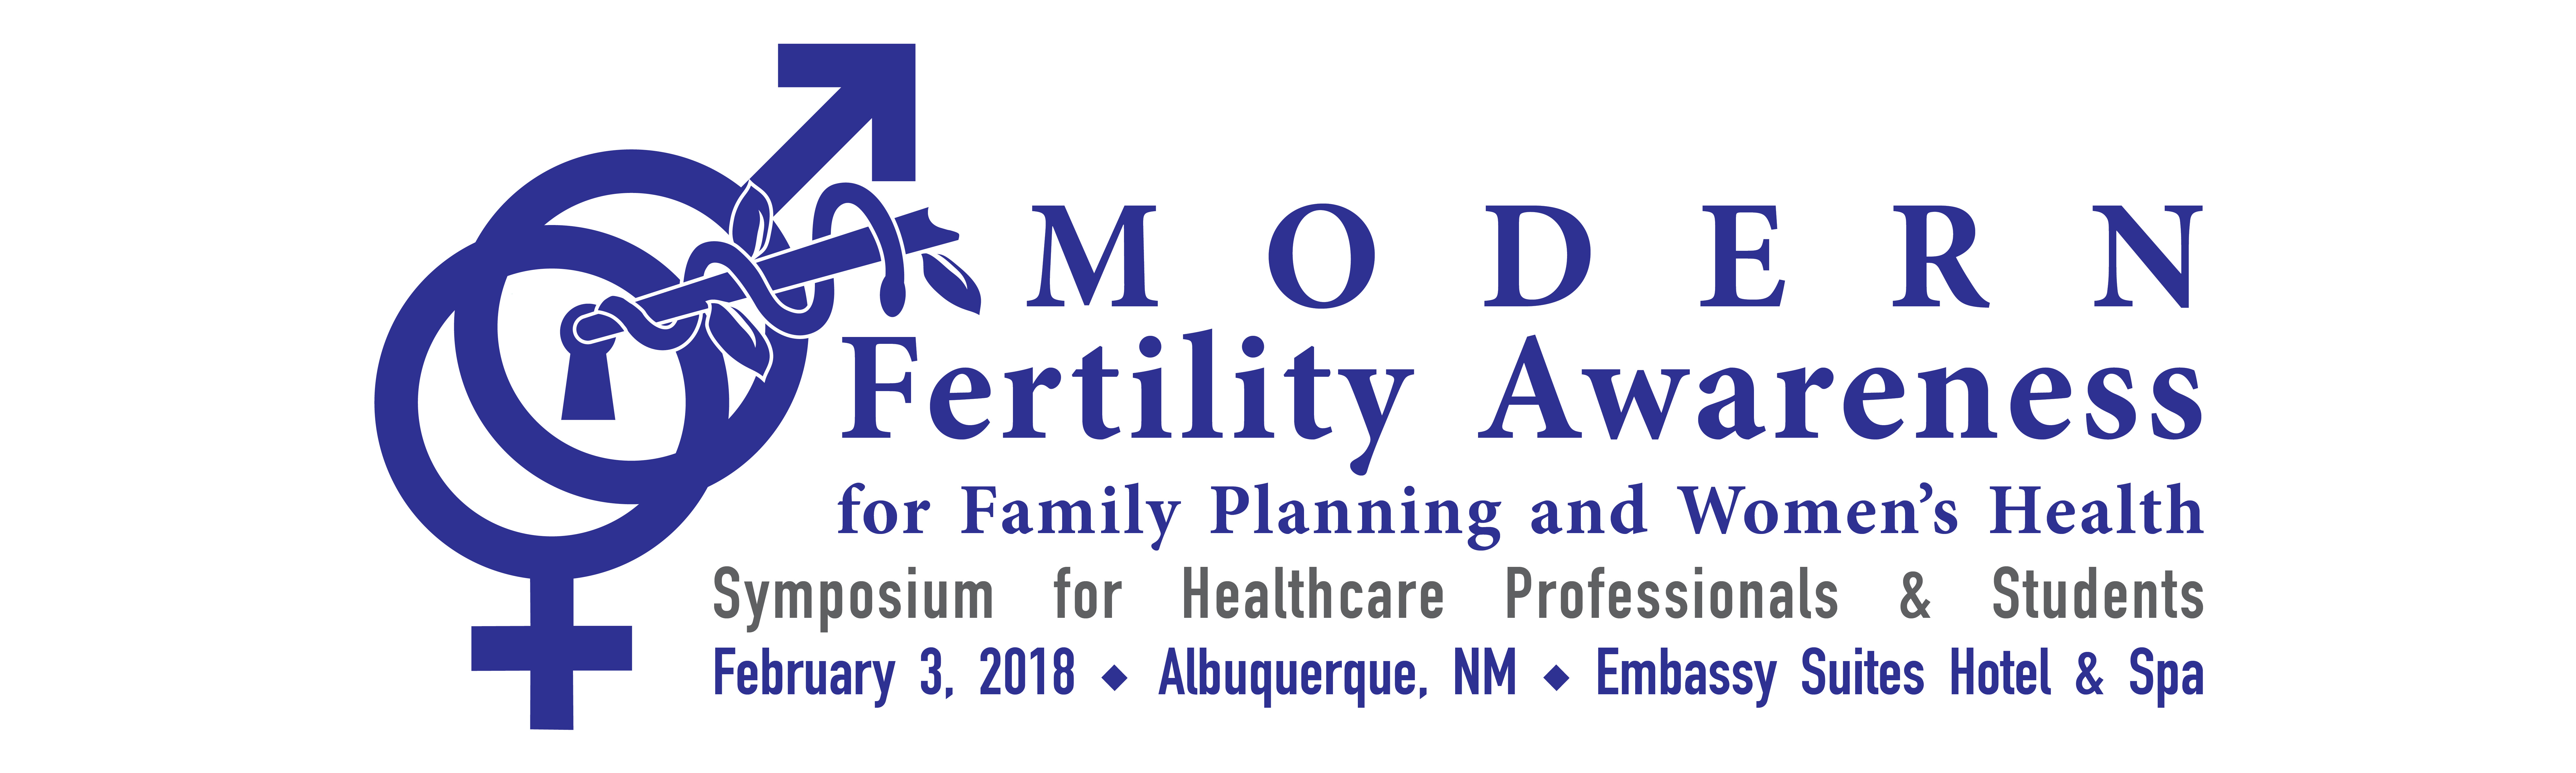 Modern Fertility Awareness for Family Planning and Women's Health